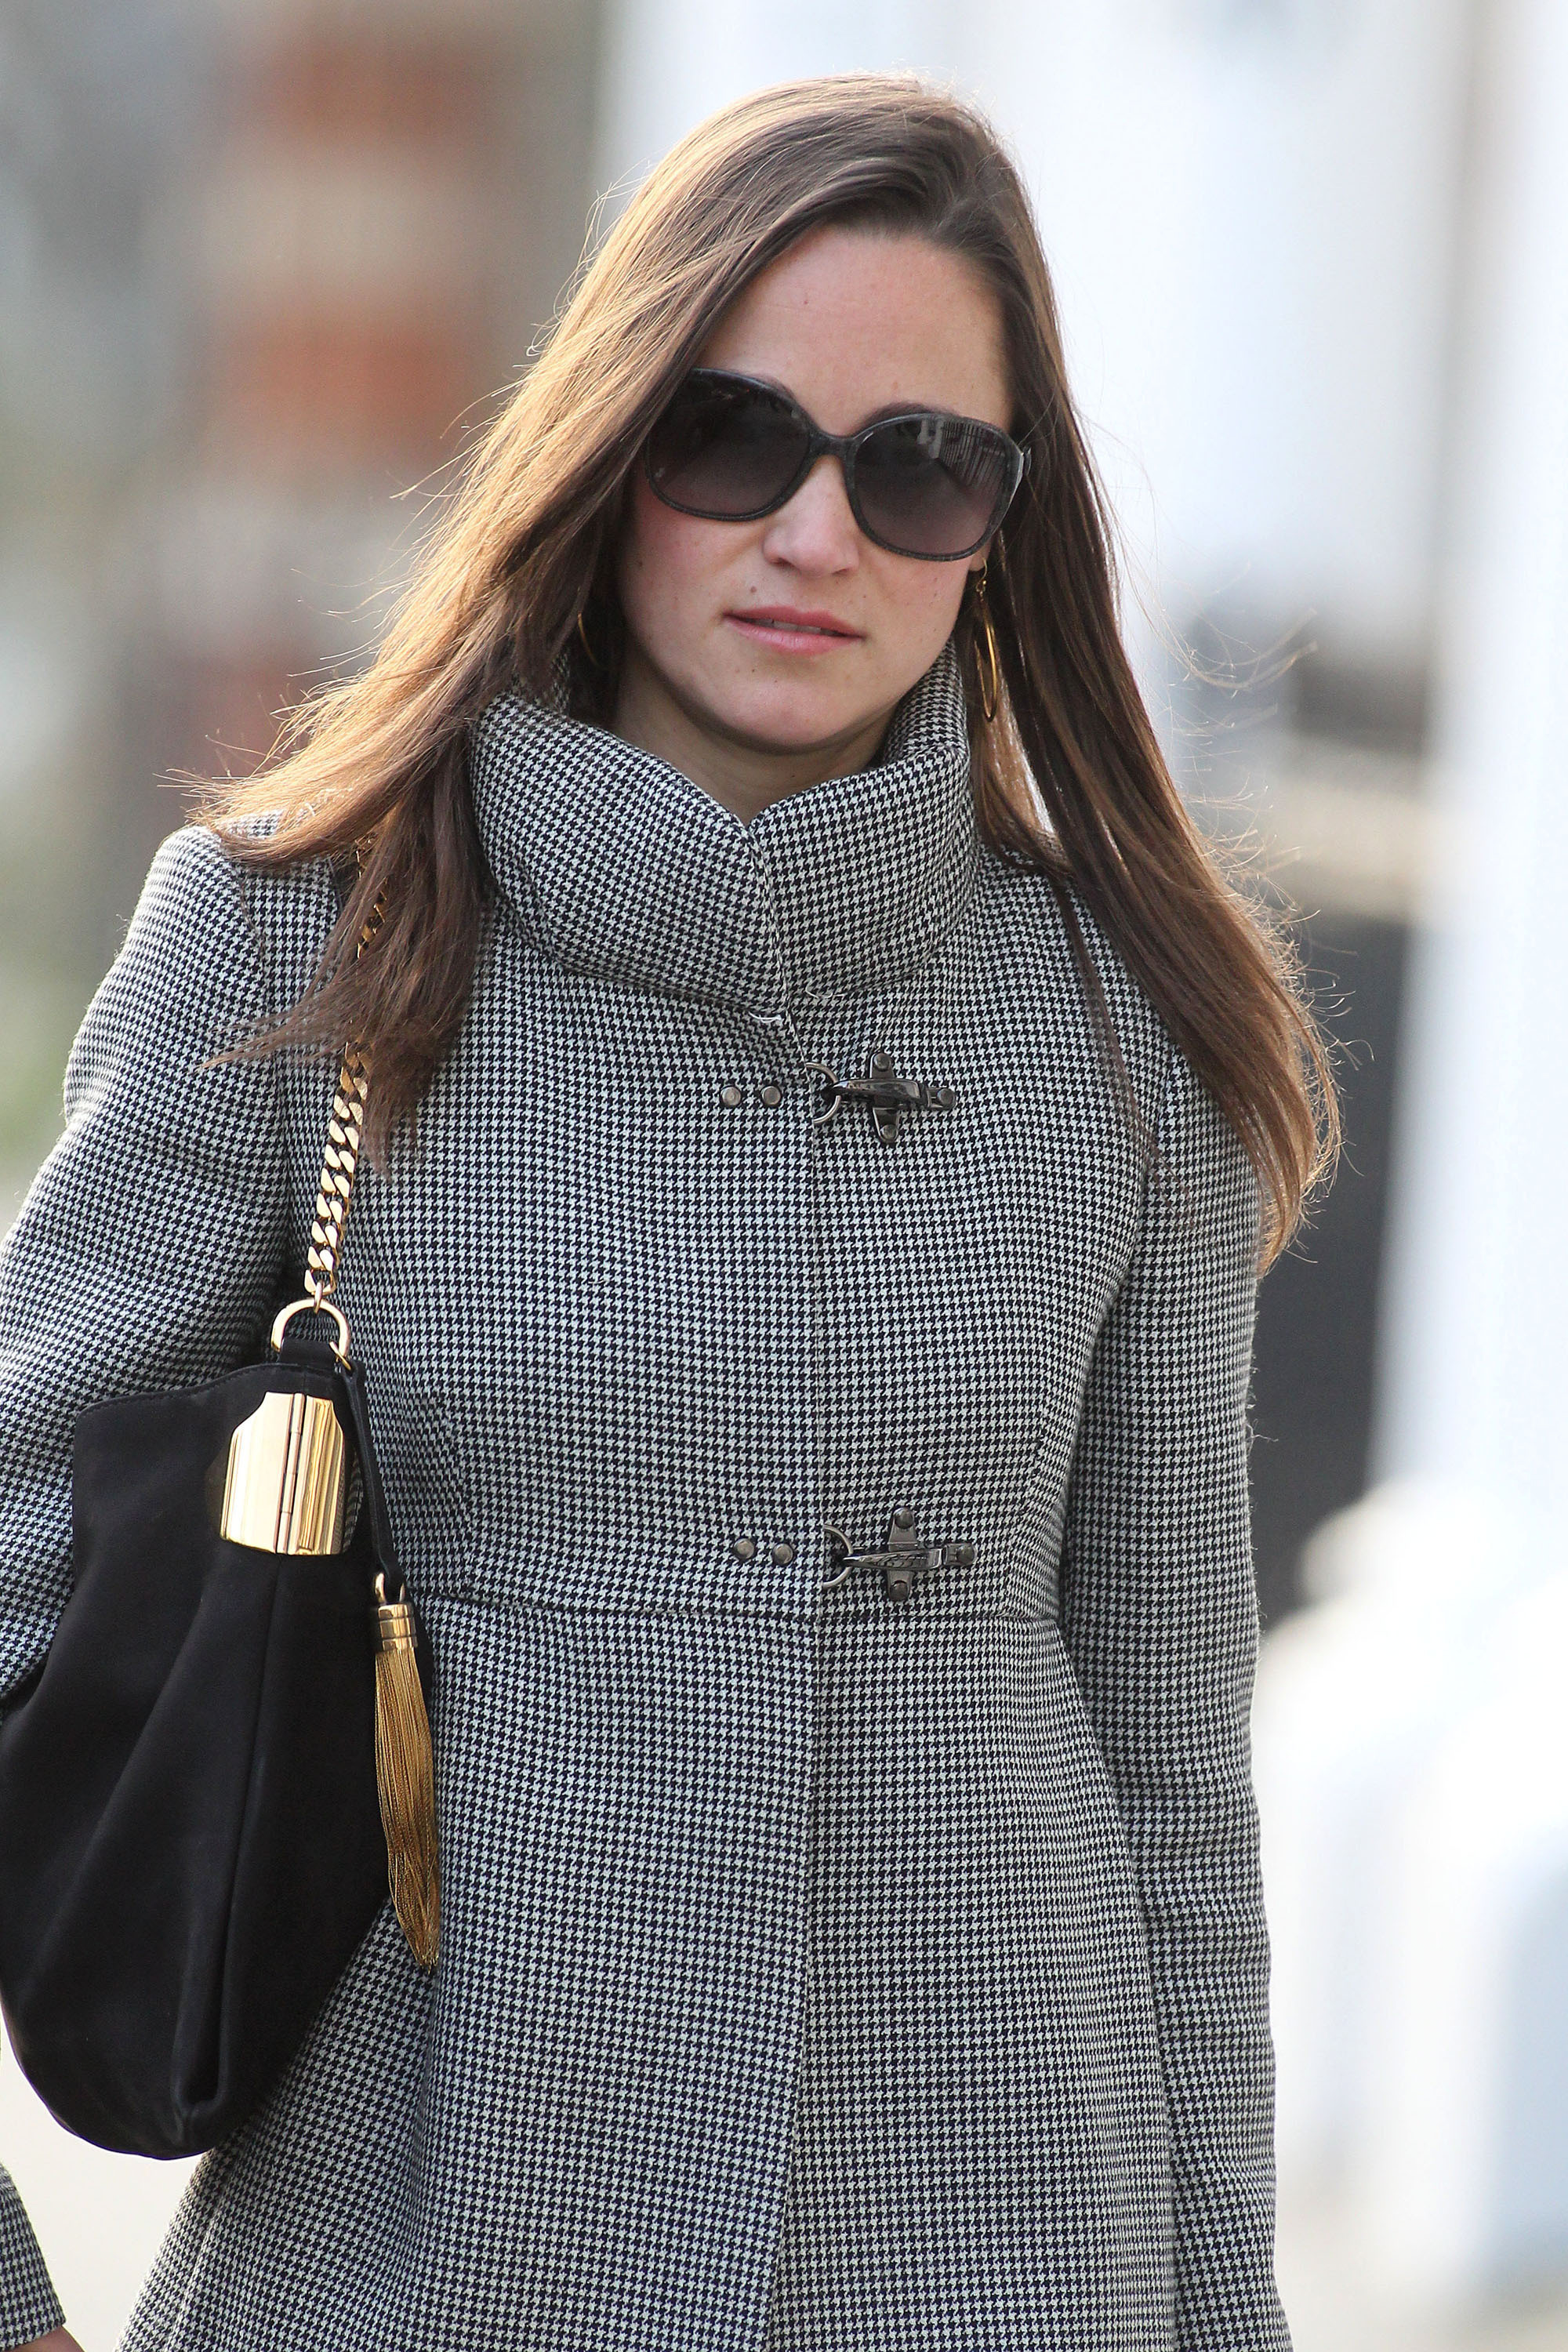 pippa middleton dating Pippa middleton is getting her own royal wedding the younger sister of kate middleton is engaged to her longtime boyfriend, james matthews.